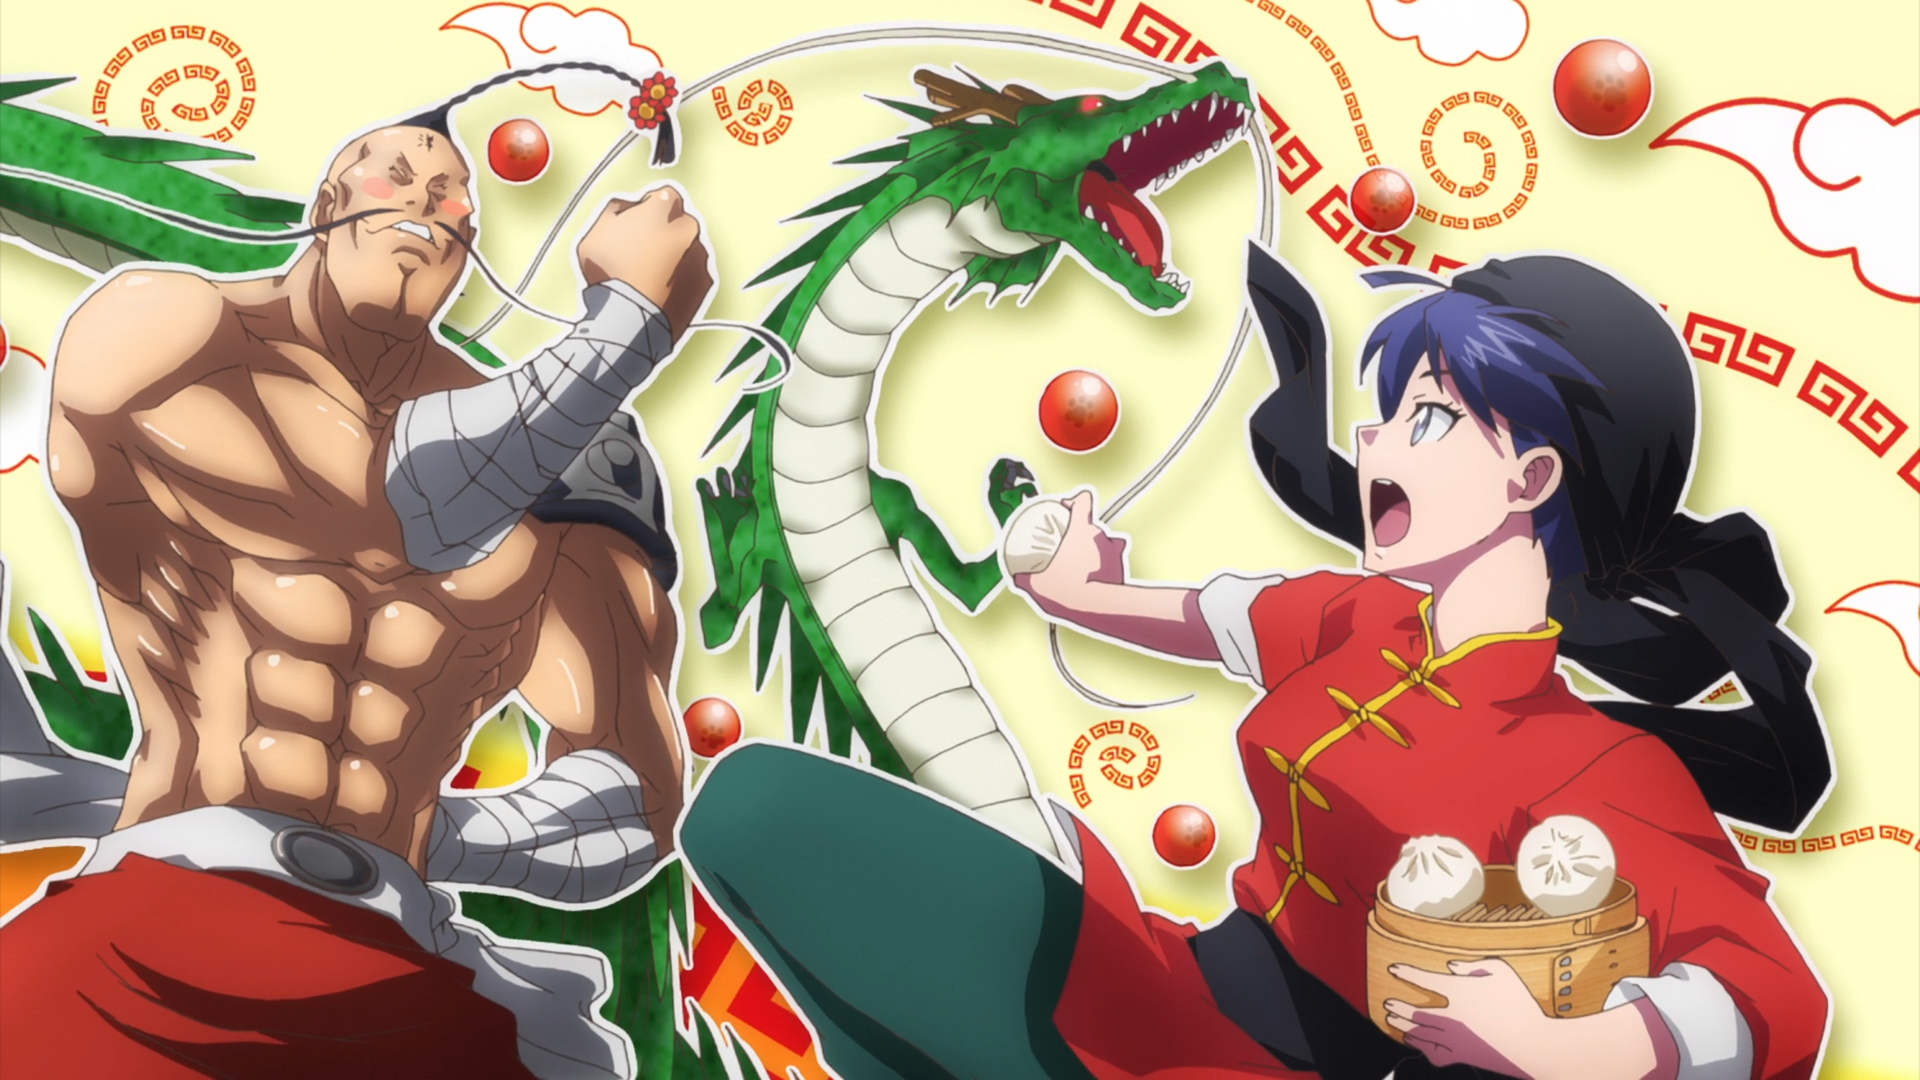 While dressed as Ranma Saotome from Ranma 1/2, Chinese cosplayer Beibei Yang faces off against parodies of Ramenman from Kinnikuman and Shenlong from Dragon Ball in a scene from the 2017 Anime-Gataris TV anime.